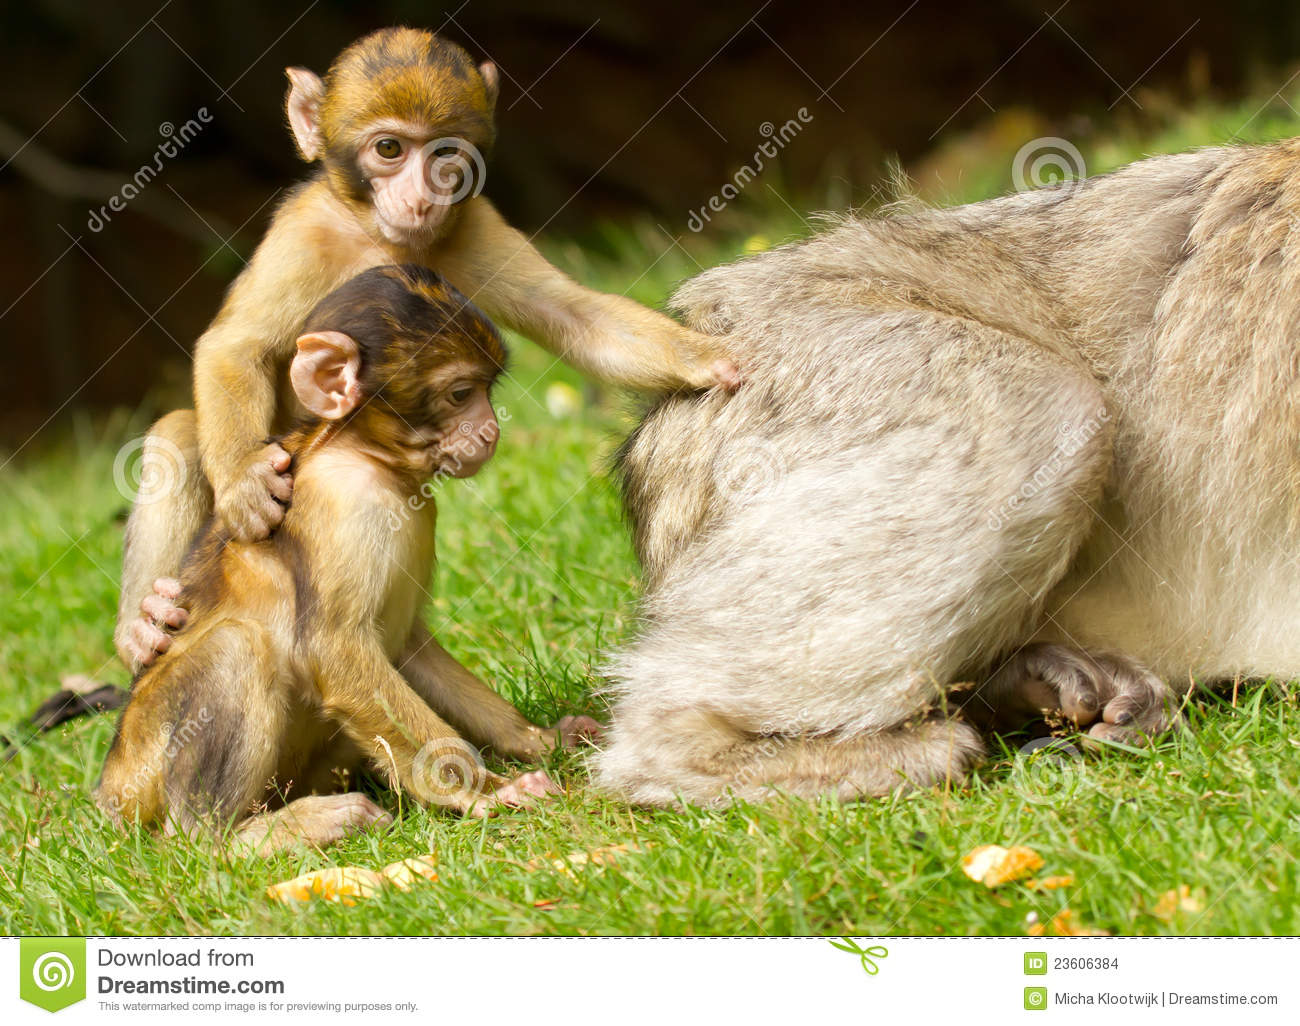 Two young apes